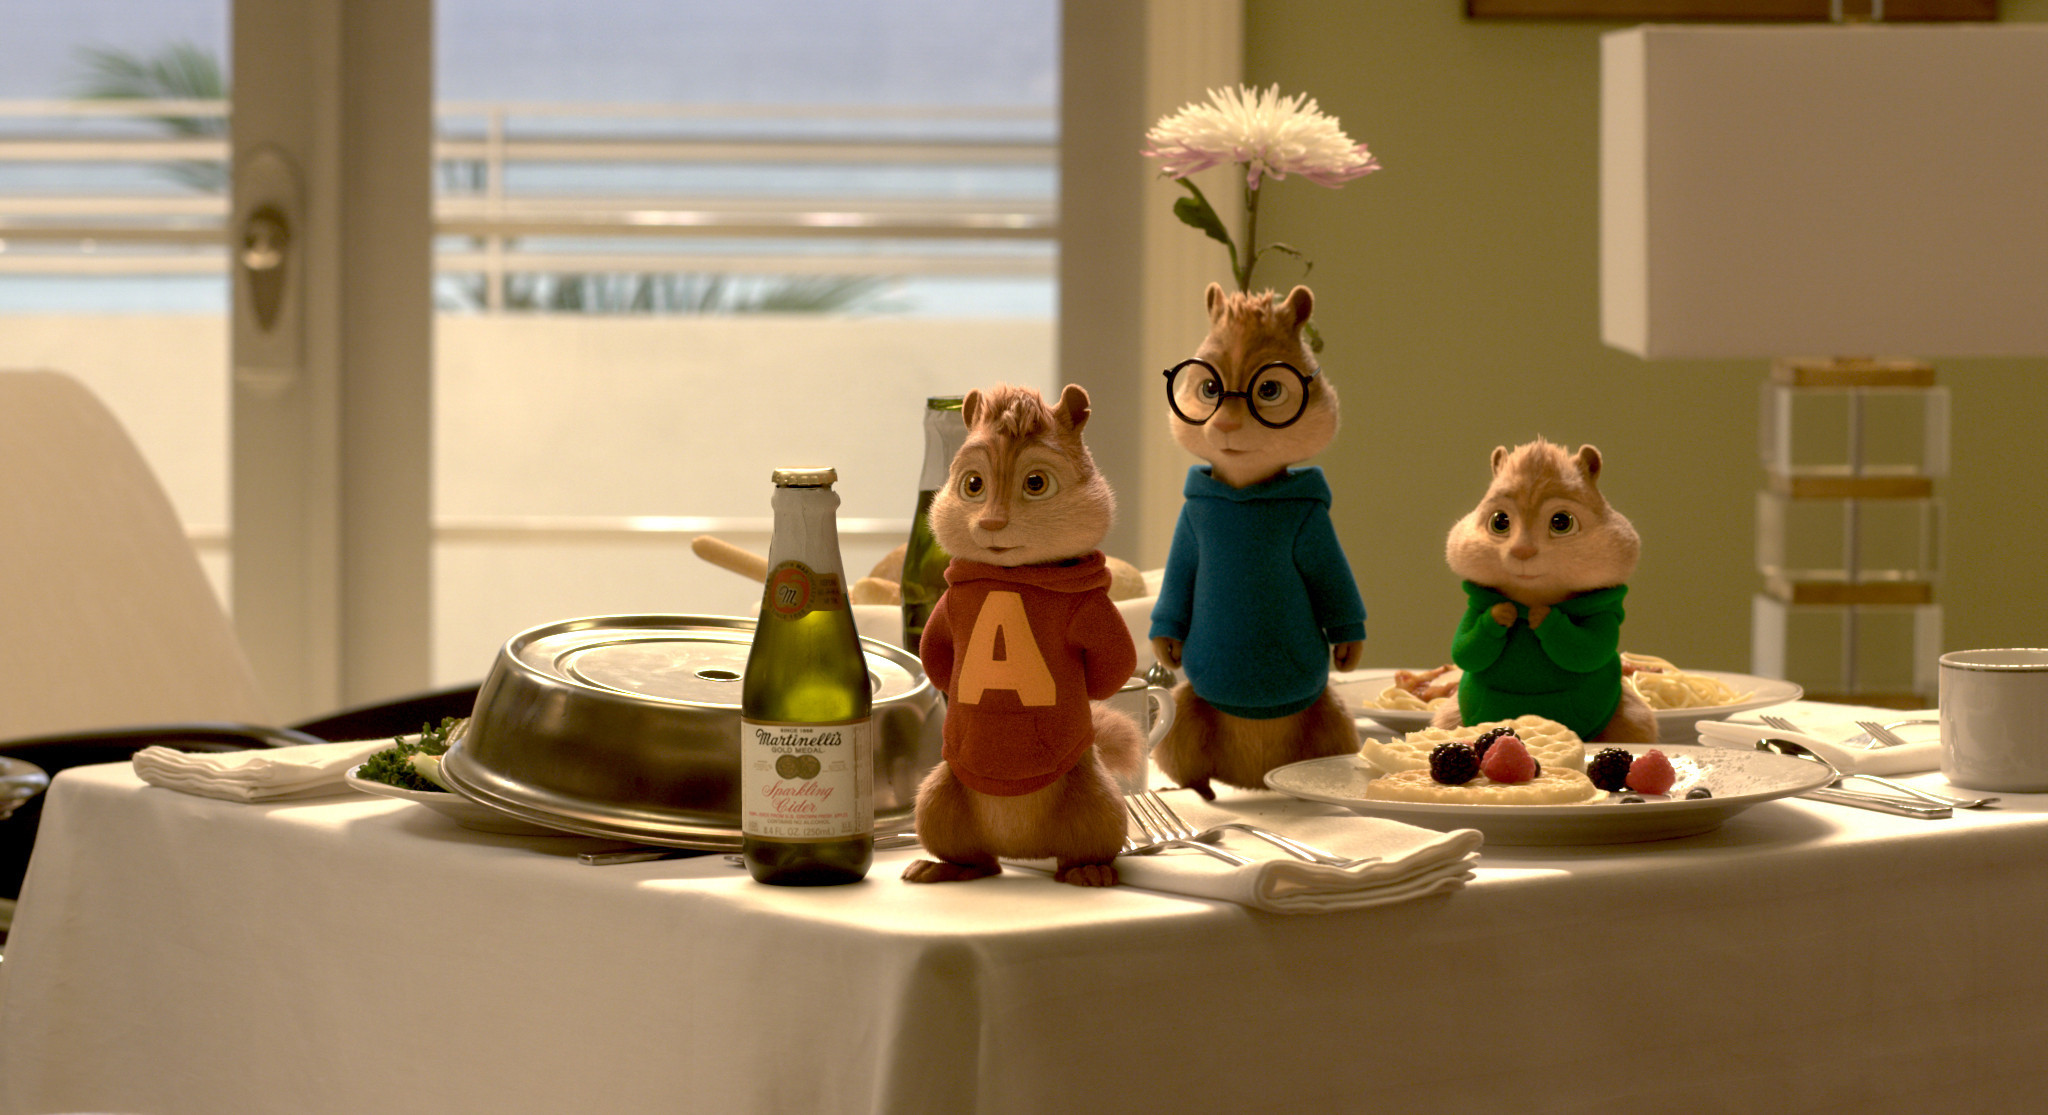 alvin and the chipmunks: the road chip' review: mischevious rodents